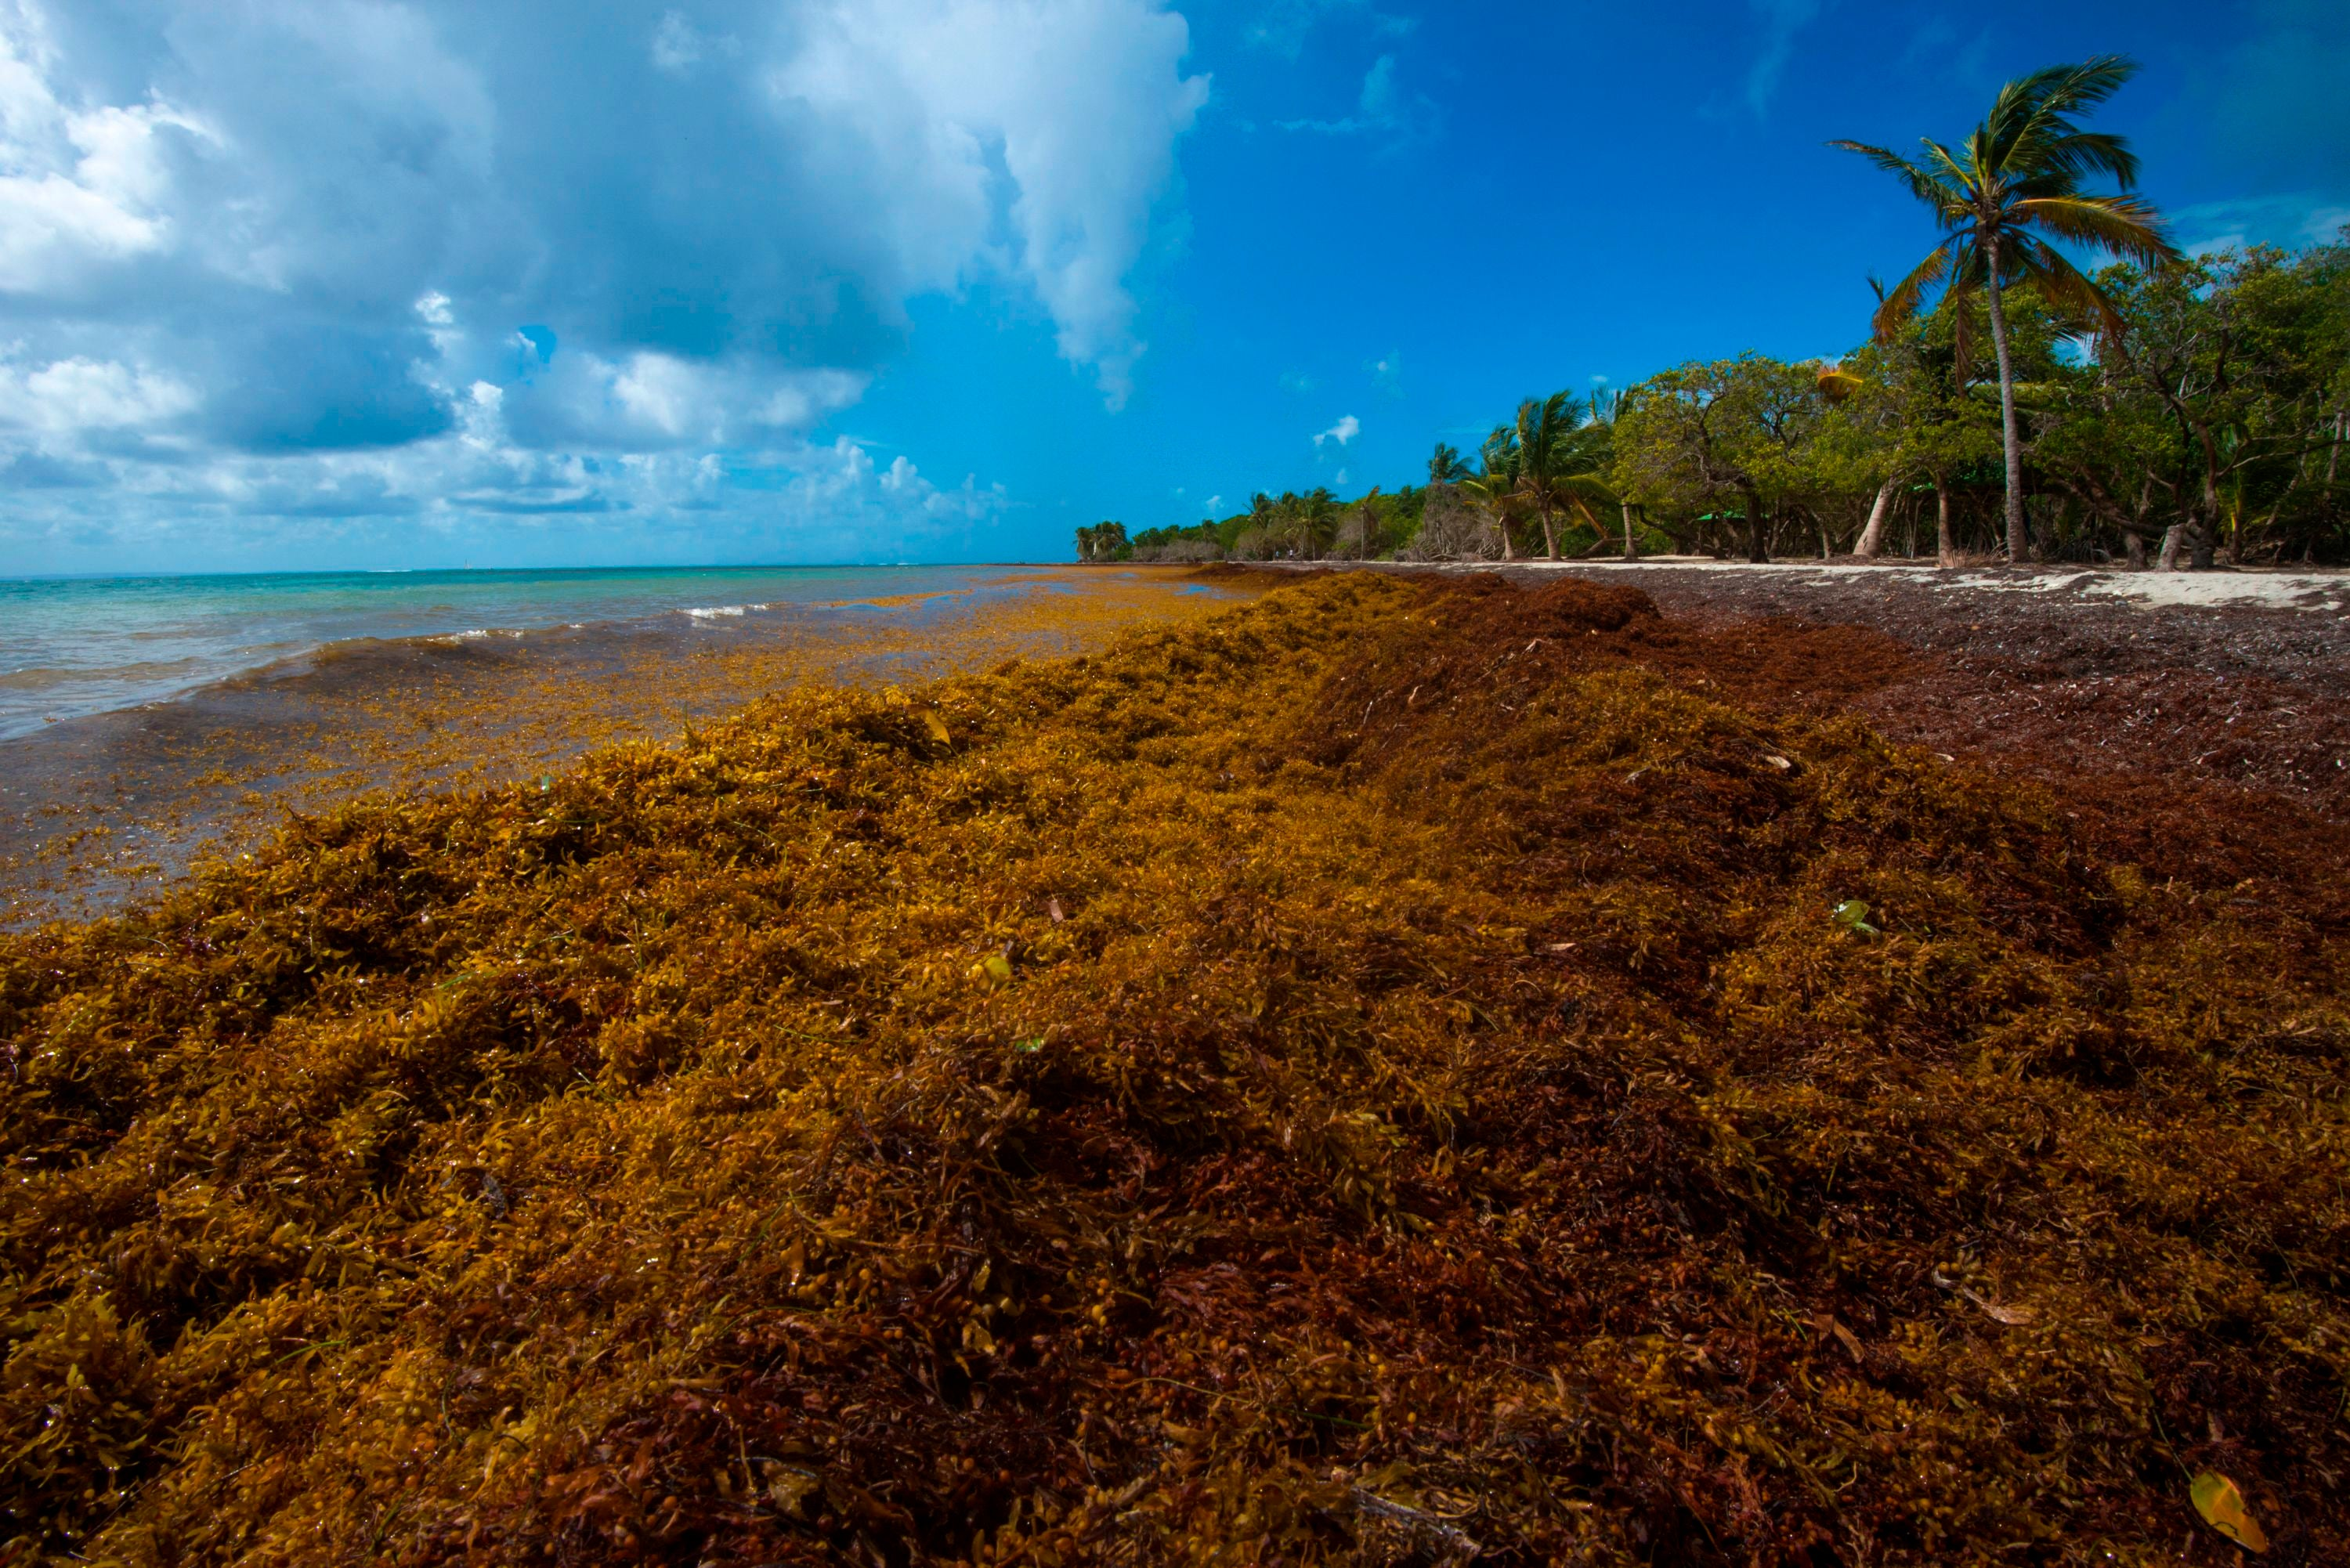 Huge Sargassum Seaweed Blooms Again Threaten Florida